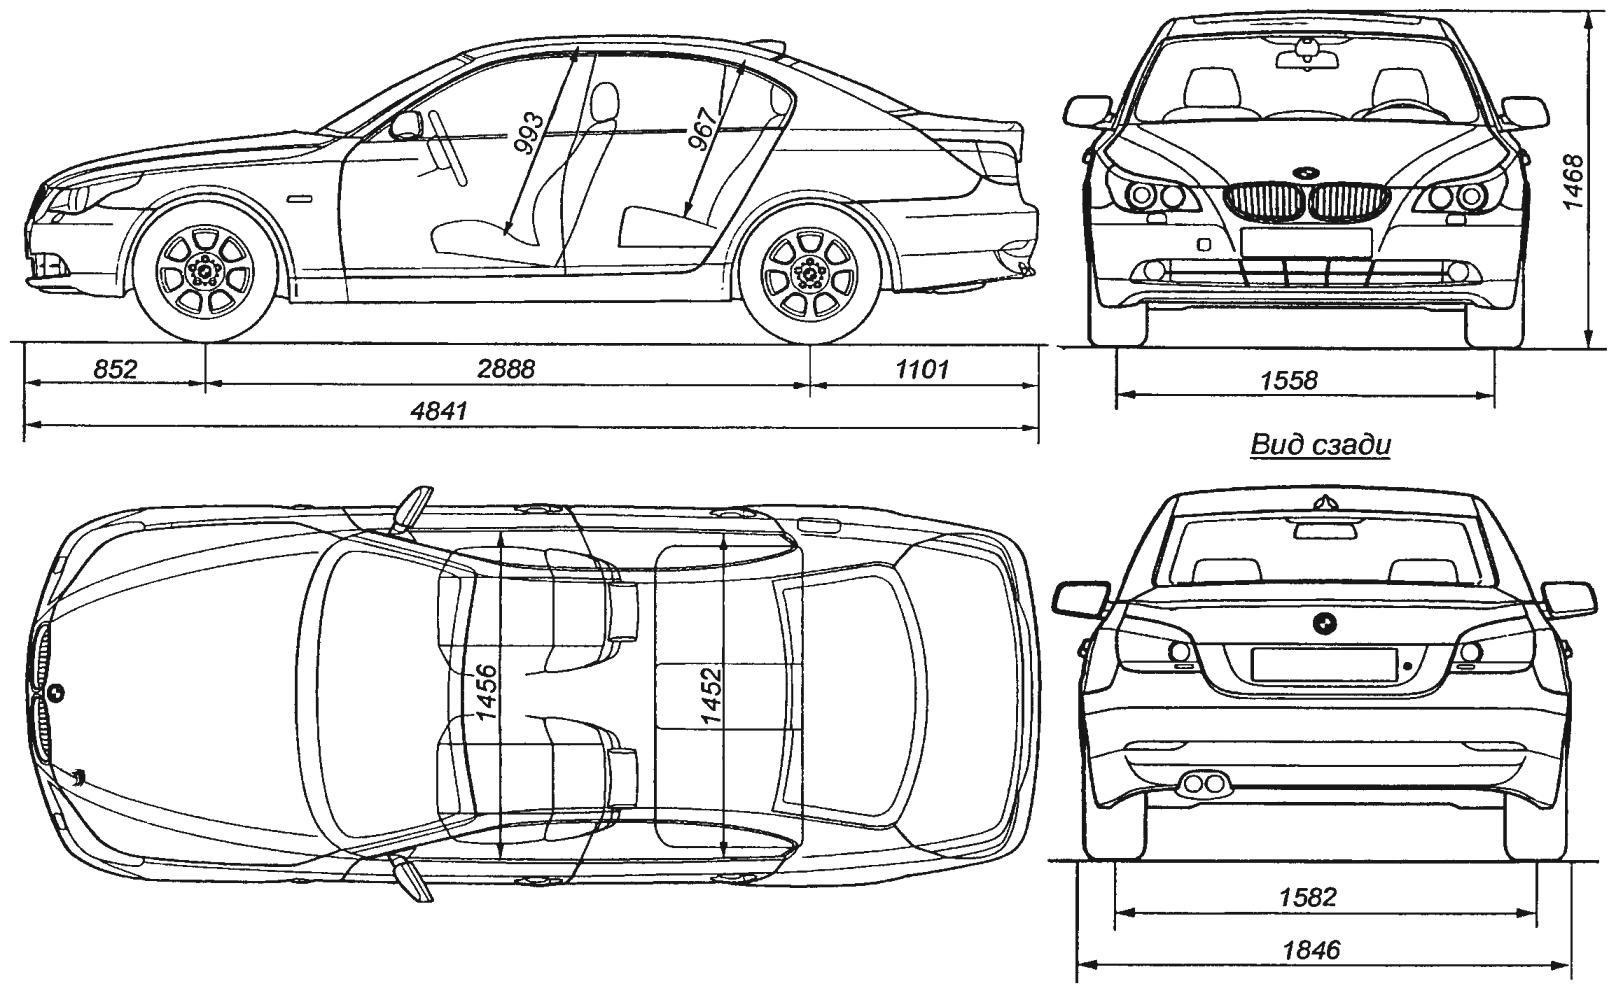 Basic dimensions of the BMW 530i